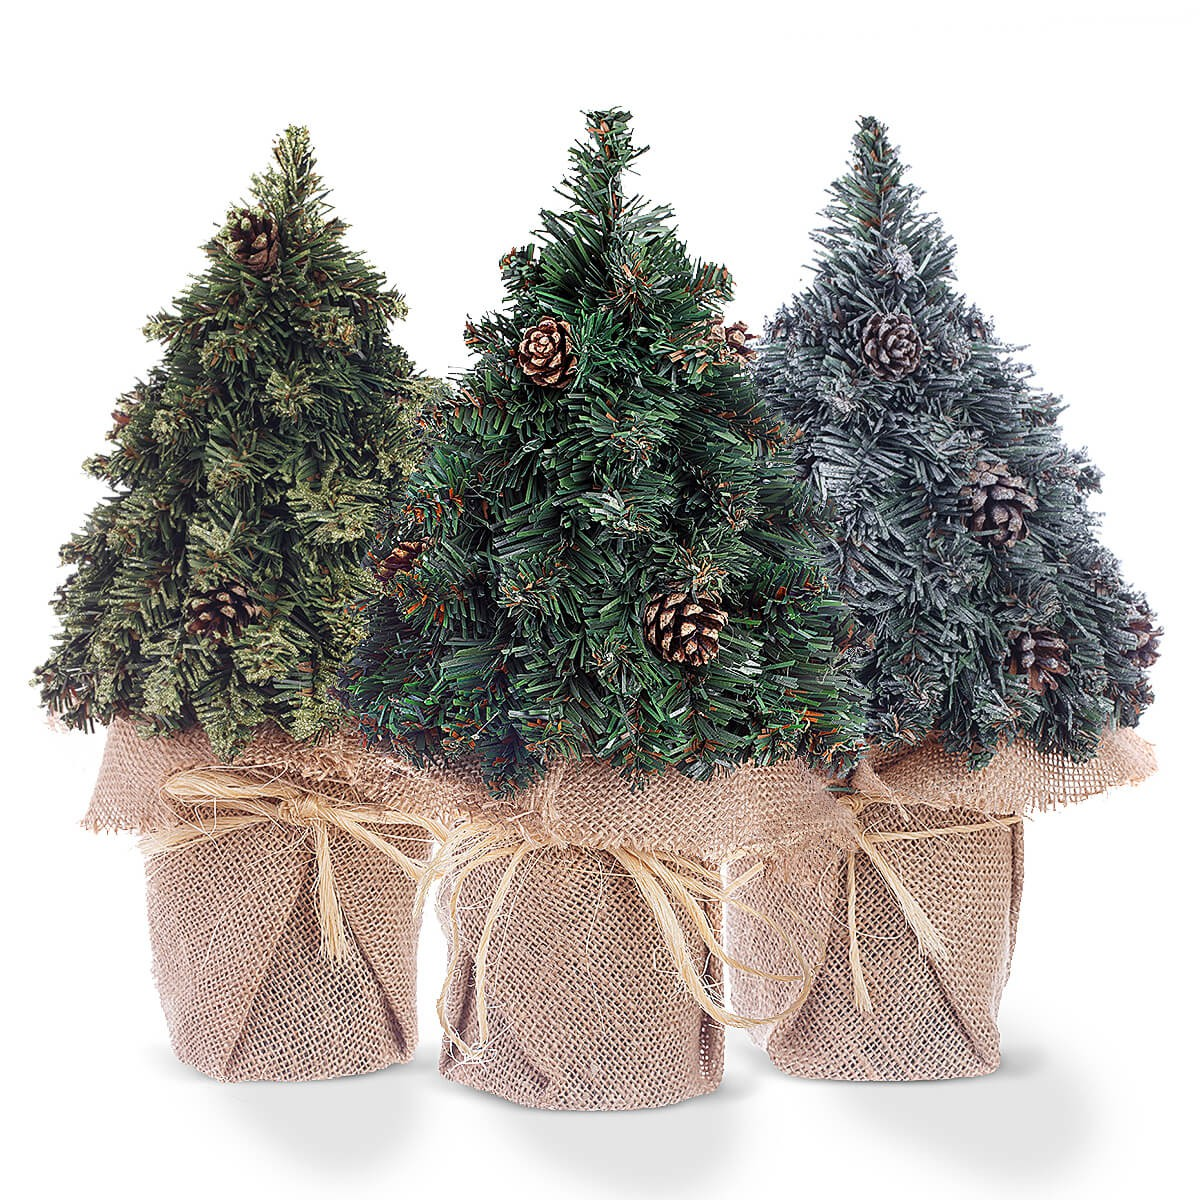 mini weihnachtsbaum 35cm k nstlich weihnachtsbaum mini. Black Bedroom Furniture Sets. Home Design Ideas